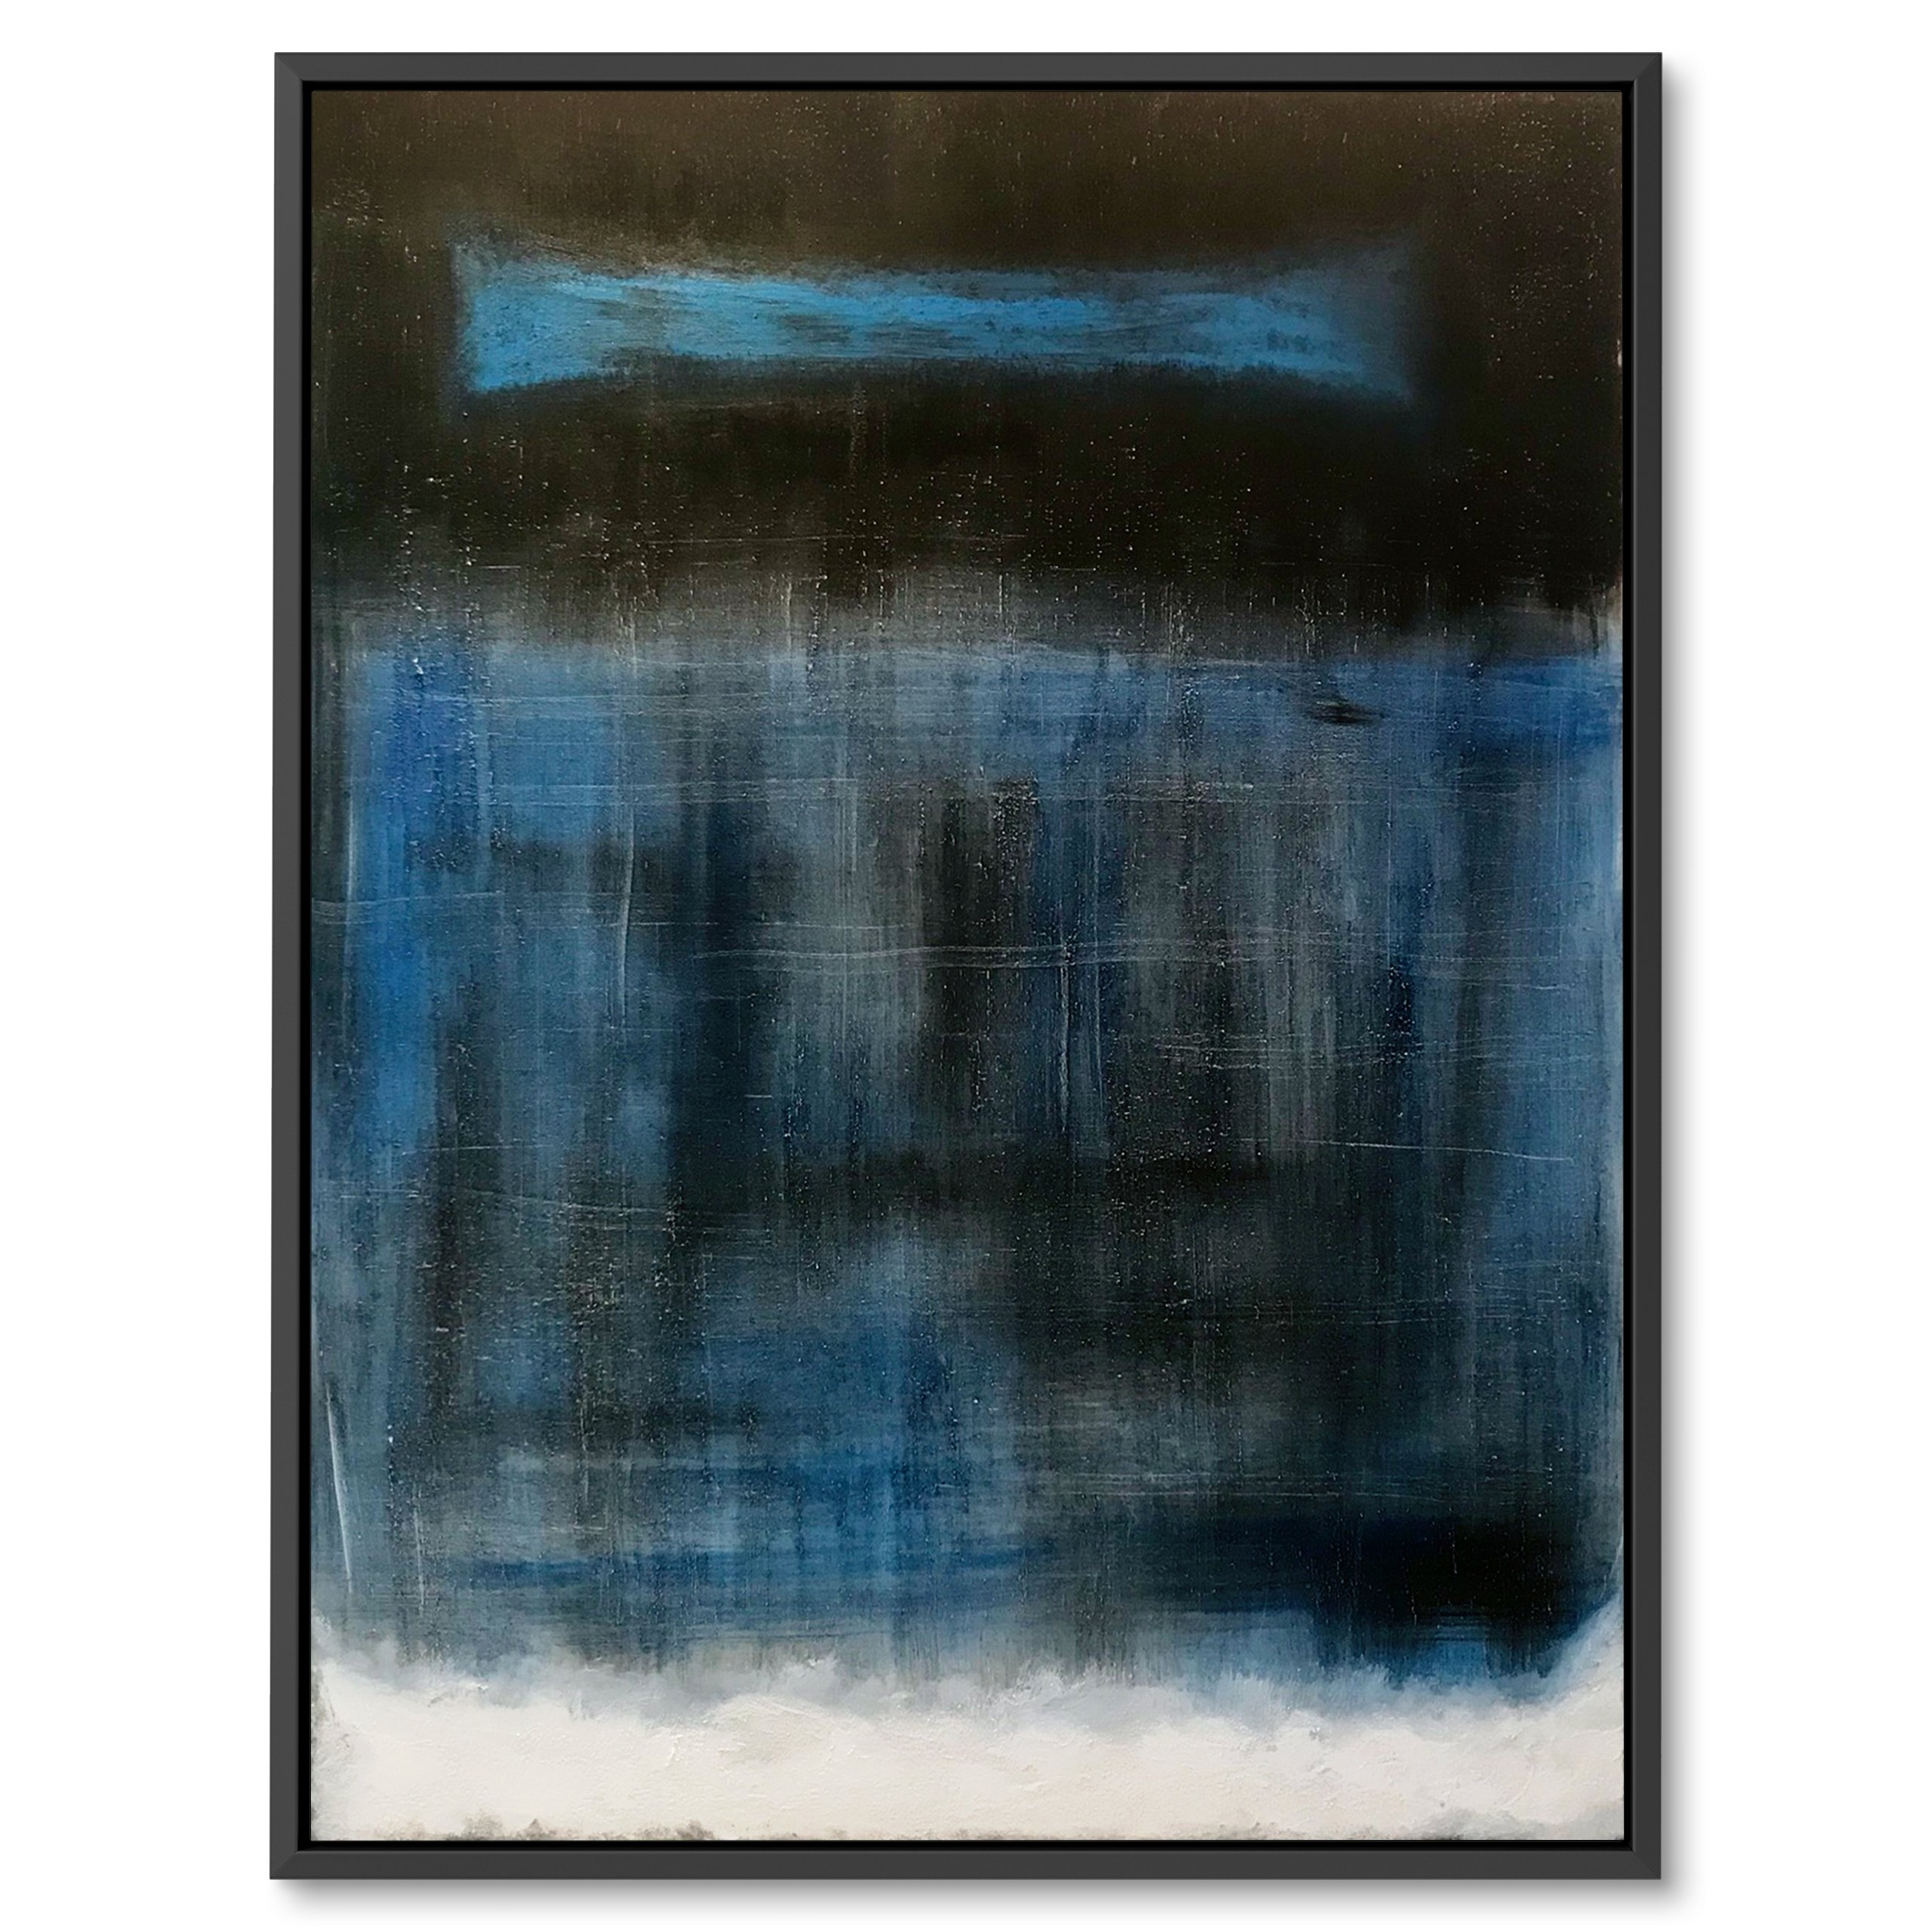 Black, White and blue abstract art By Benny Moshe, Interior design